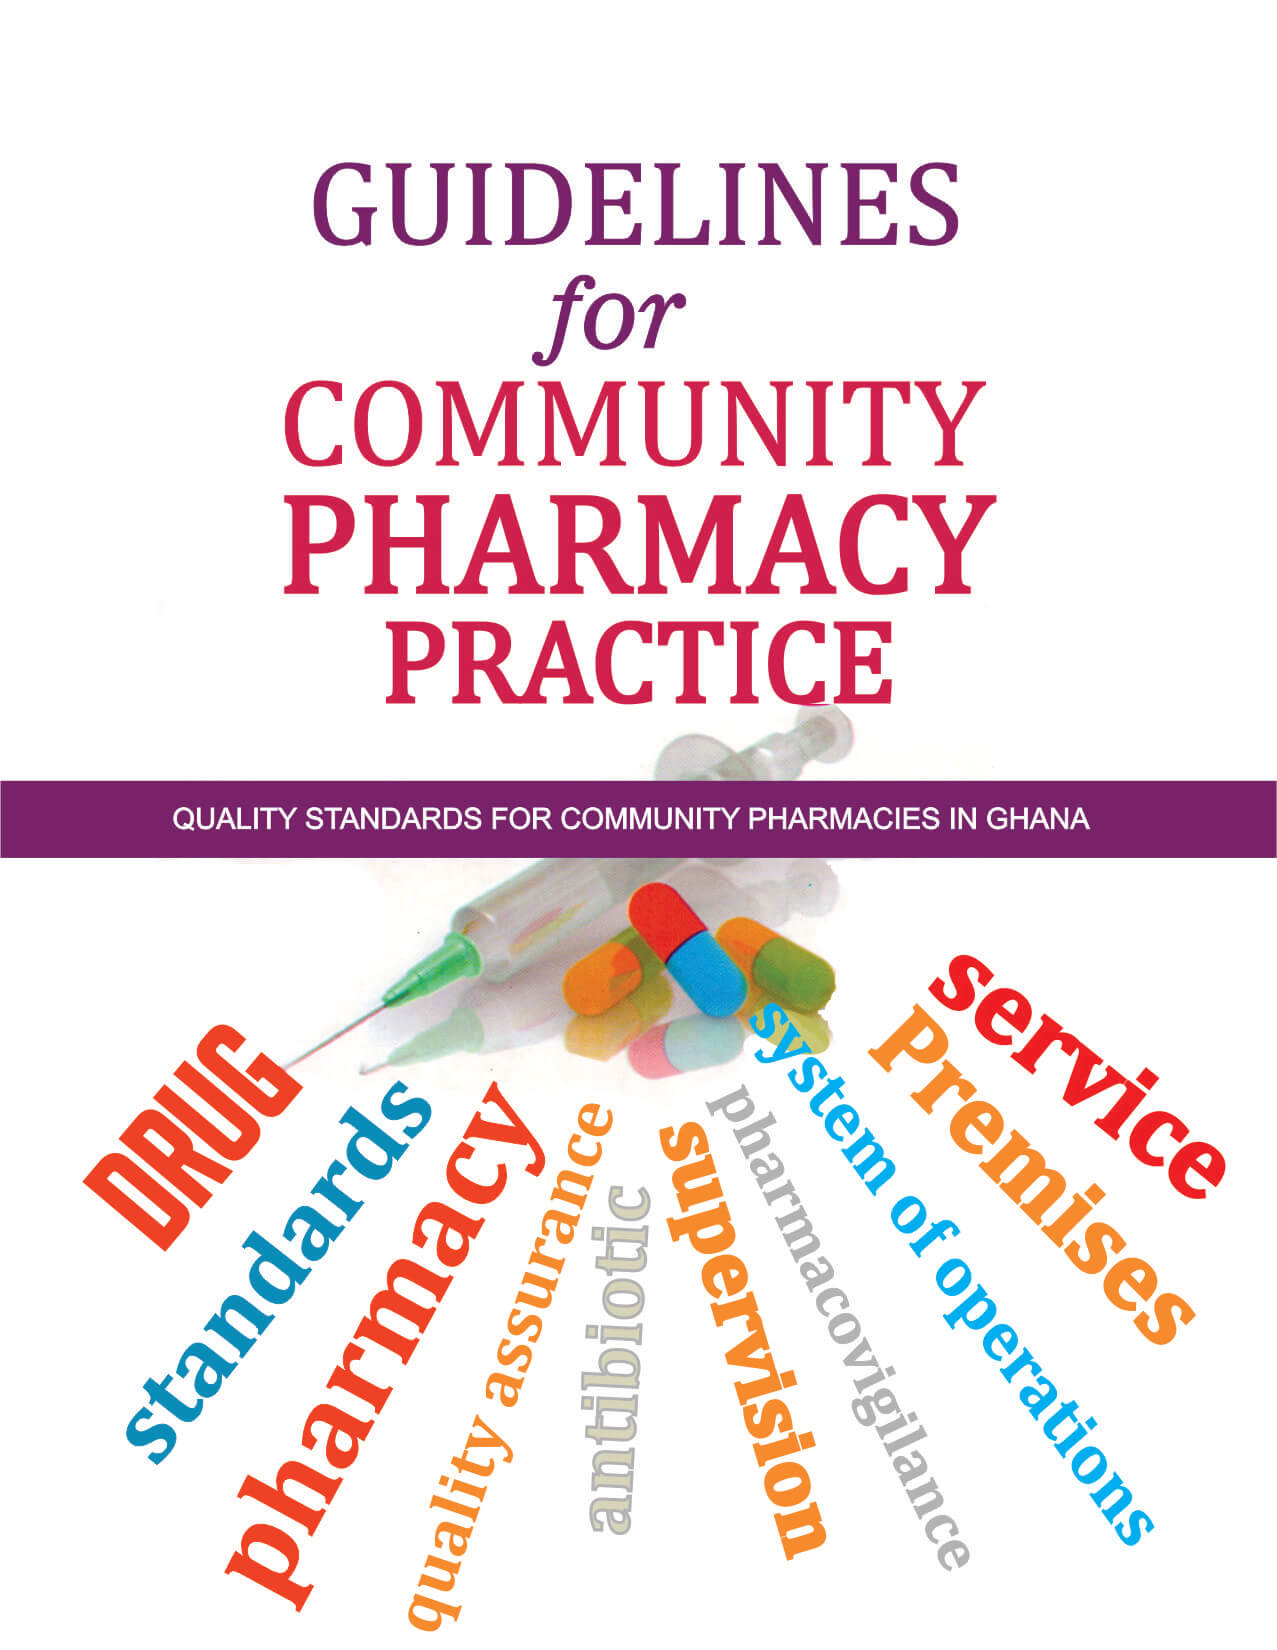 Guidelines for Community Pharmacy practice